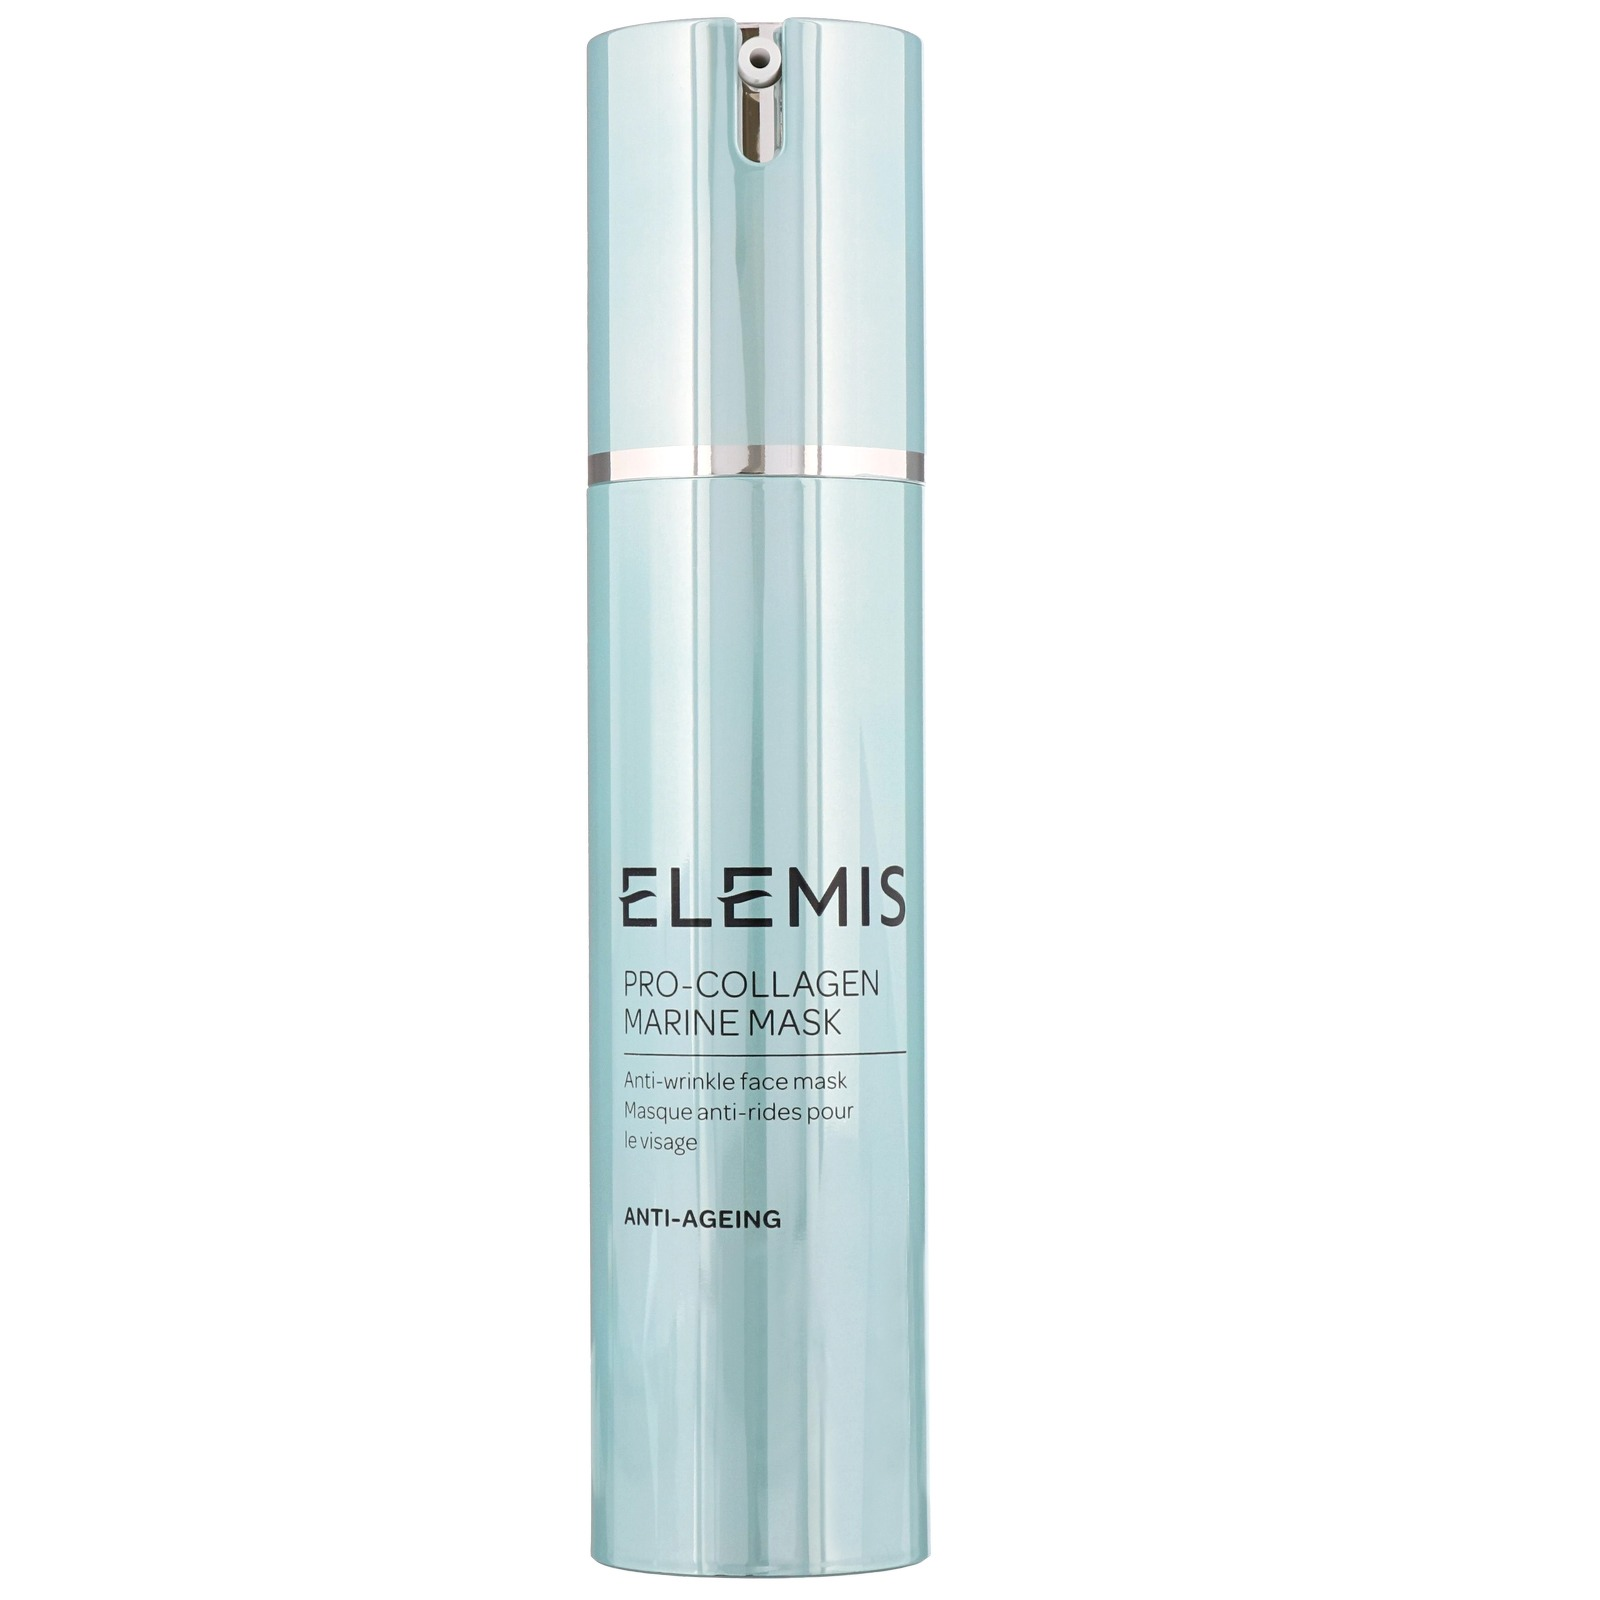 Elemis Anti-Ageing Pro-Collagen Marine Mask 50ml / 1.6 fl.oz.